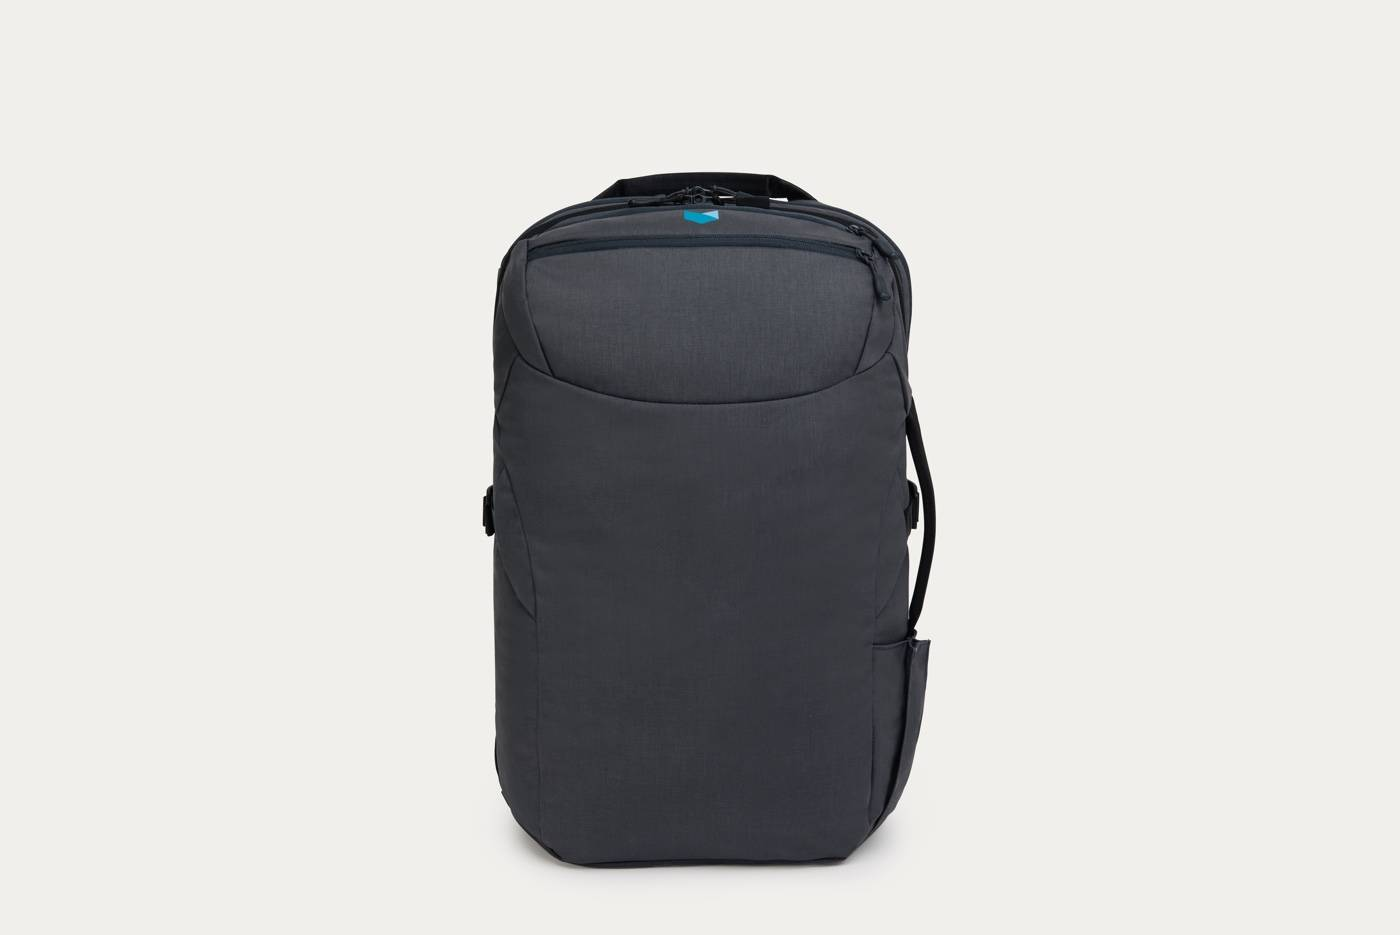 Minaal Carry-on 2.0 - The best backpack for travel.